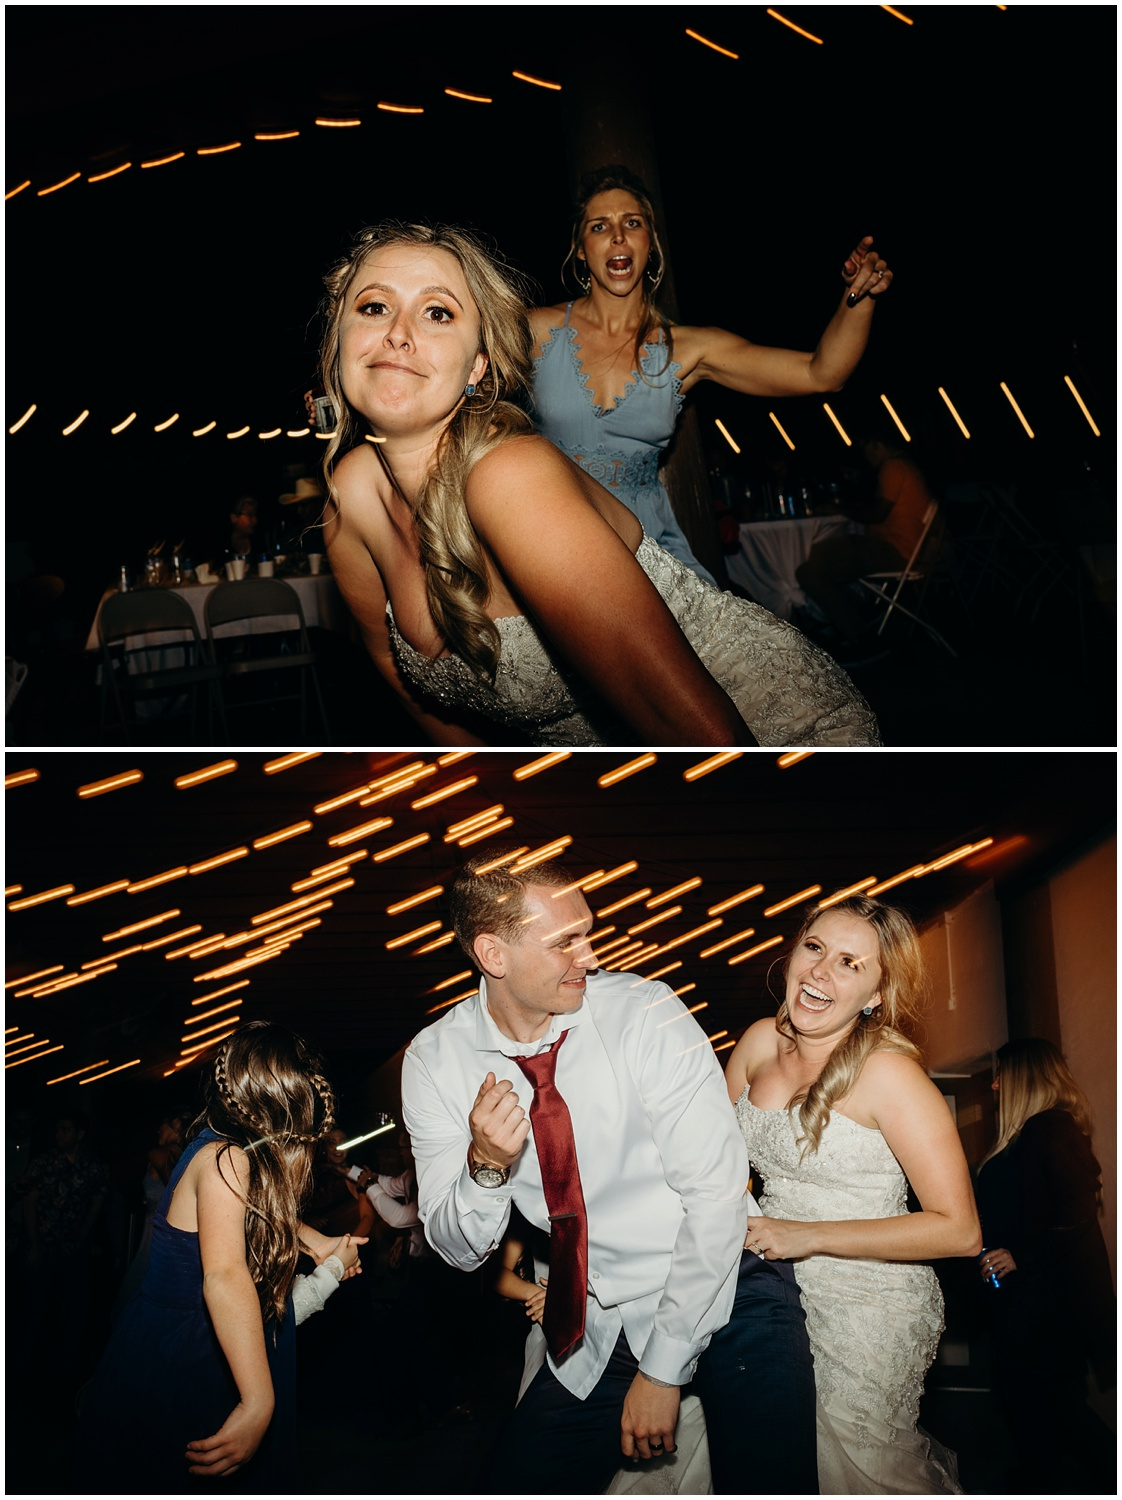 Fun and energetic reception and dance floor documented with photojournalism.